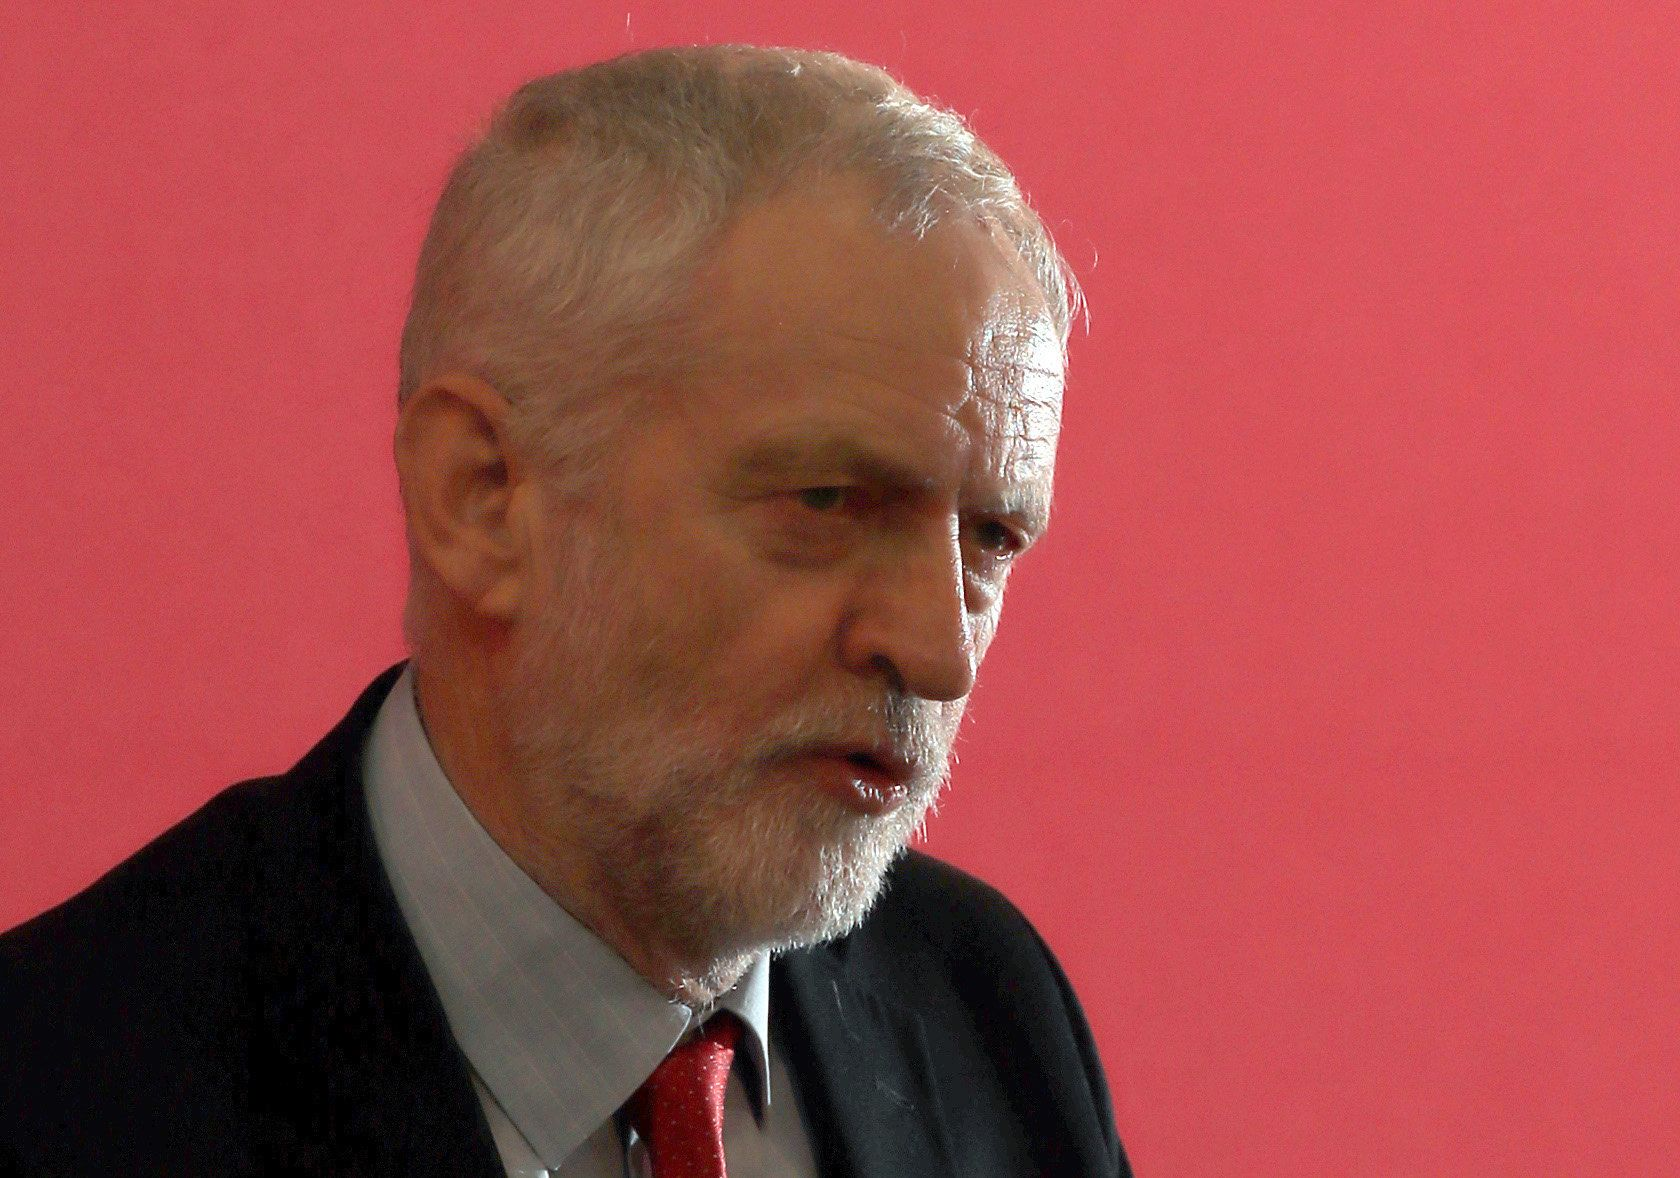 UK Labour leader criticised for anti-Semitism in party